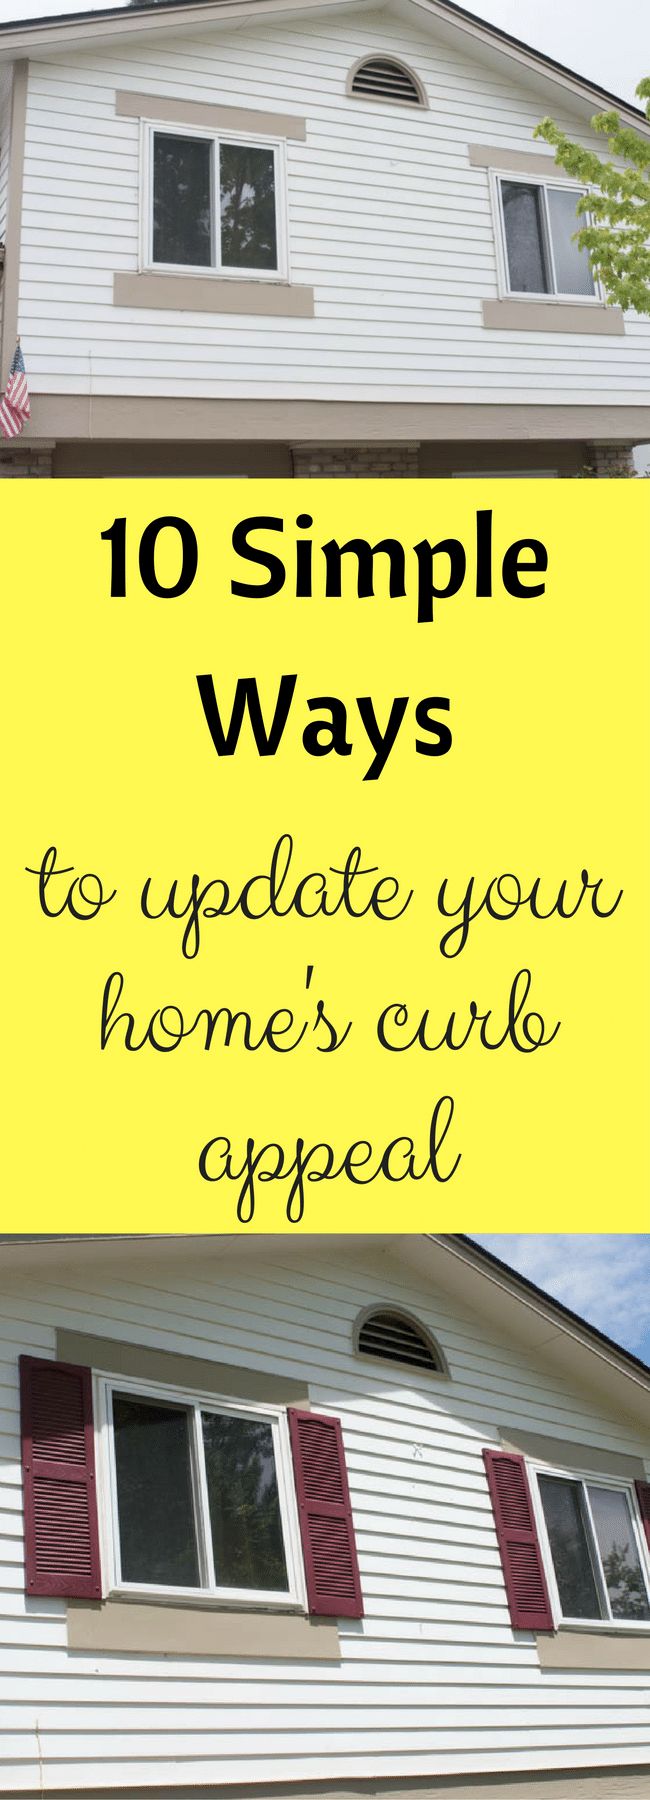 10 Simple Curb Appeal Ideas Anyone Can Do!